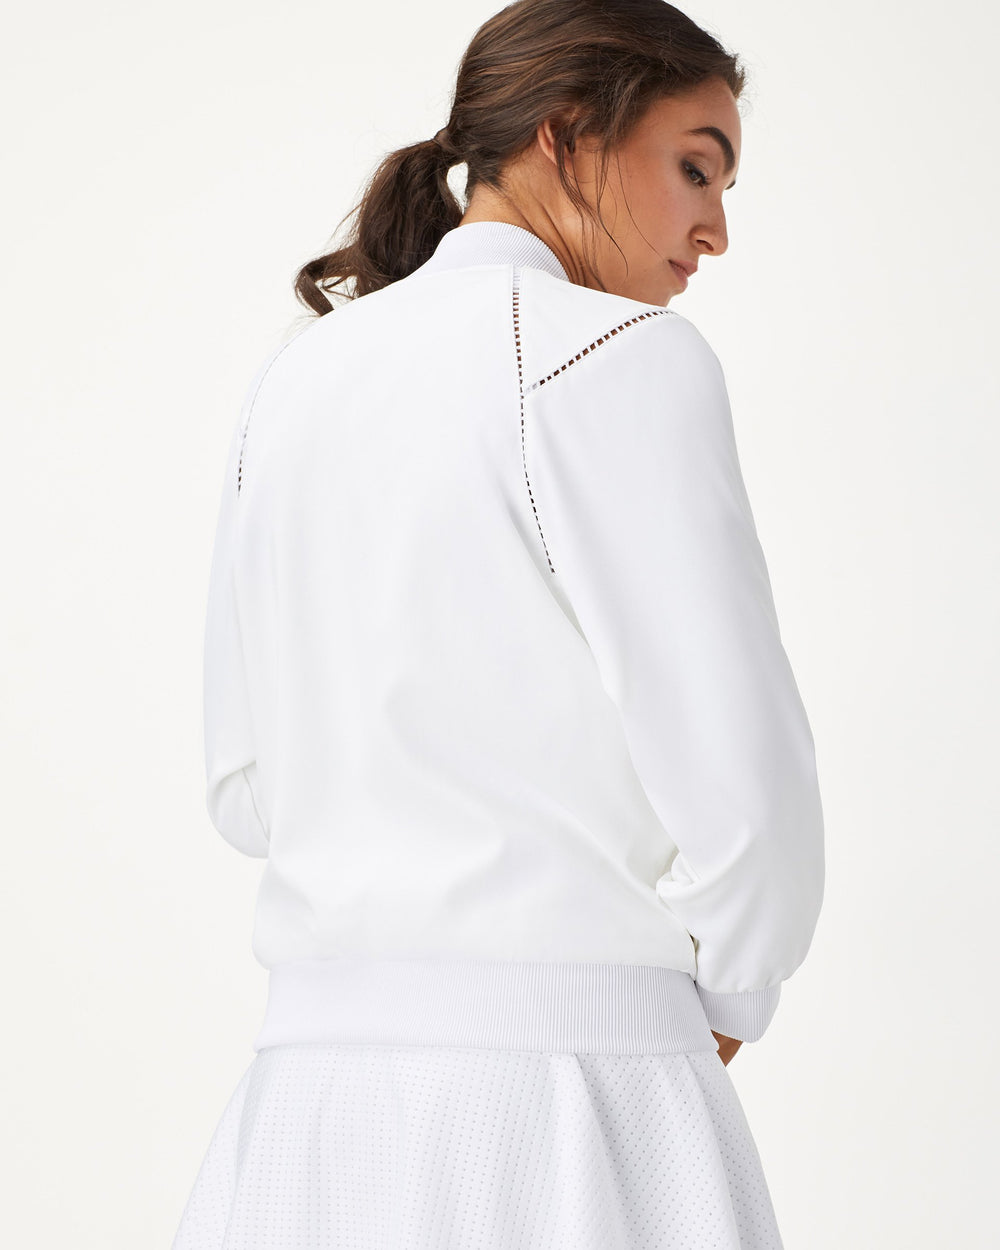 1-Love Tennis Jacket - White